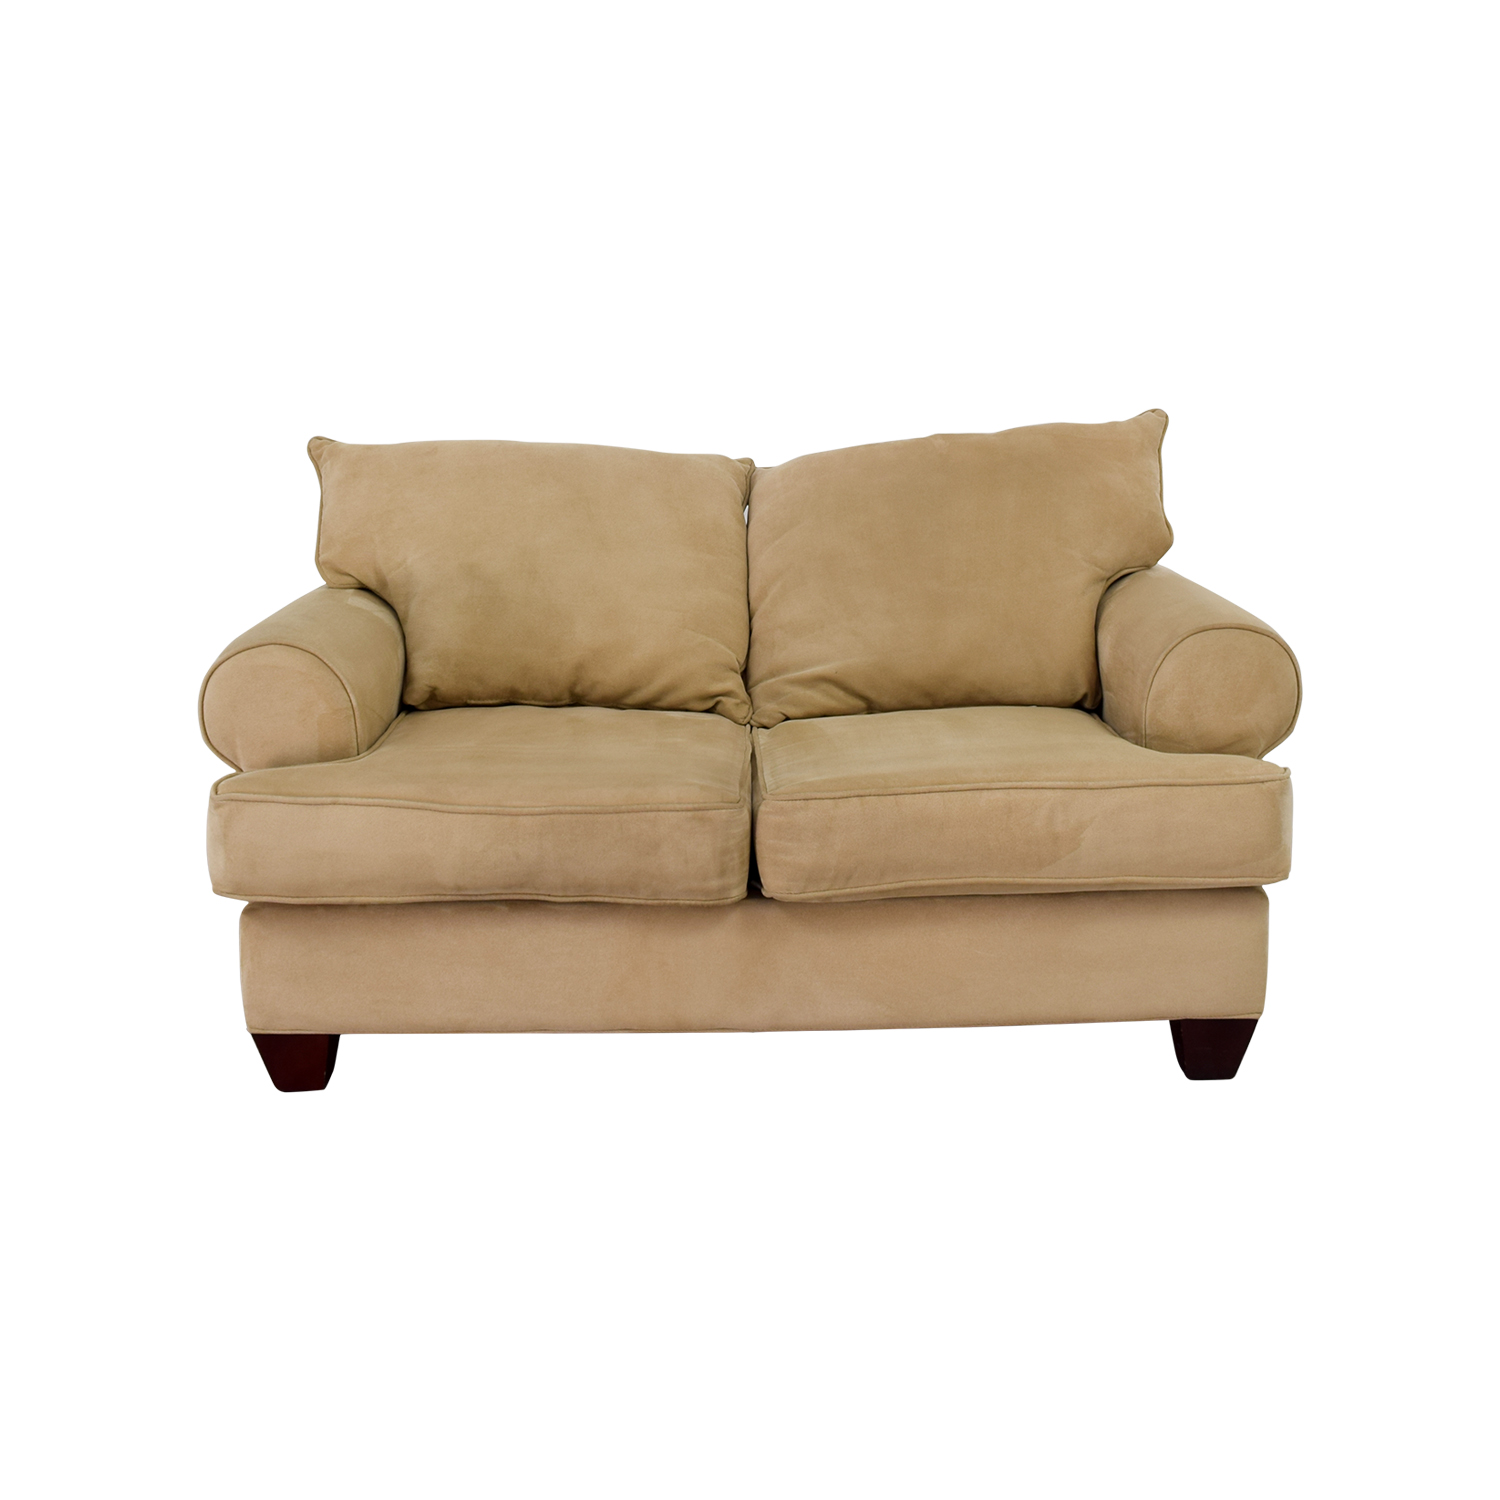 Bobs Furniture Beige Two-Cushion Love Seat sale